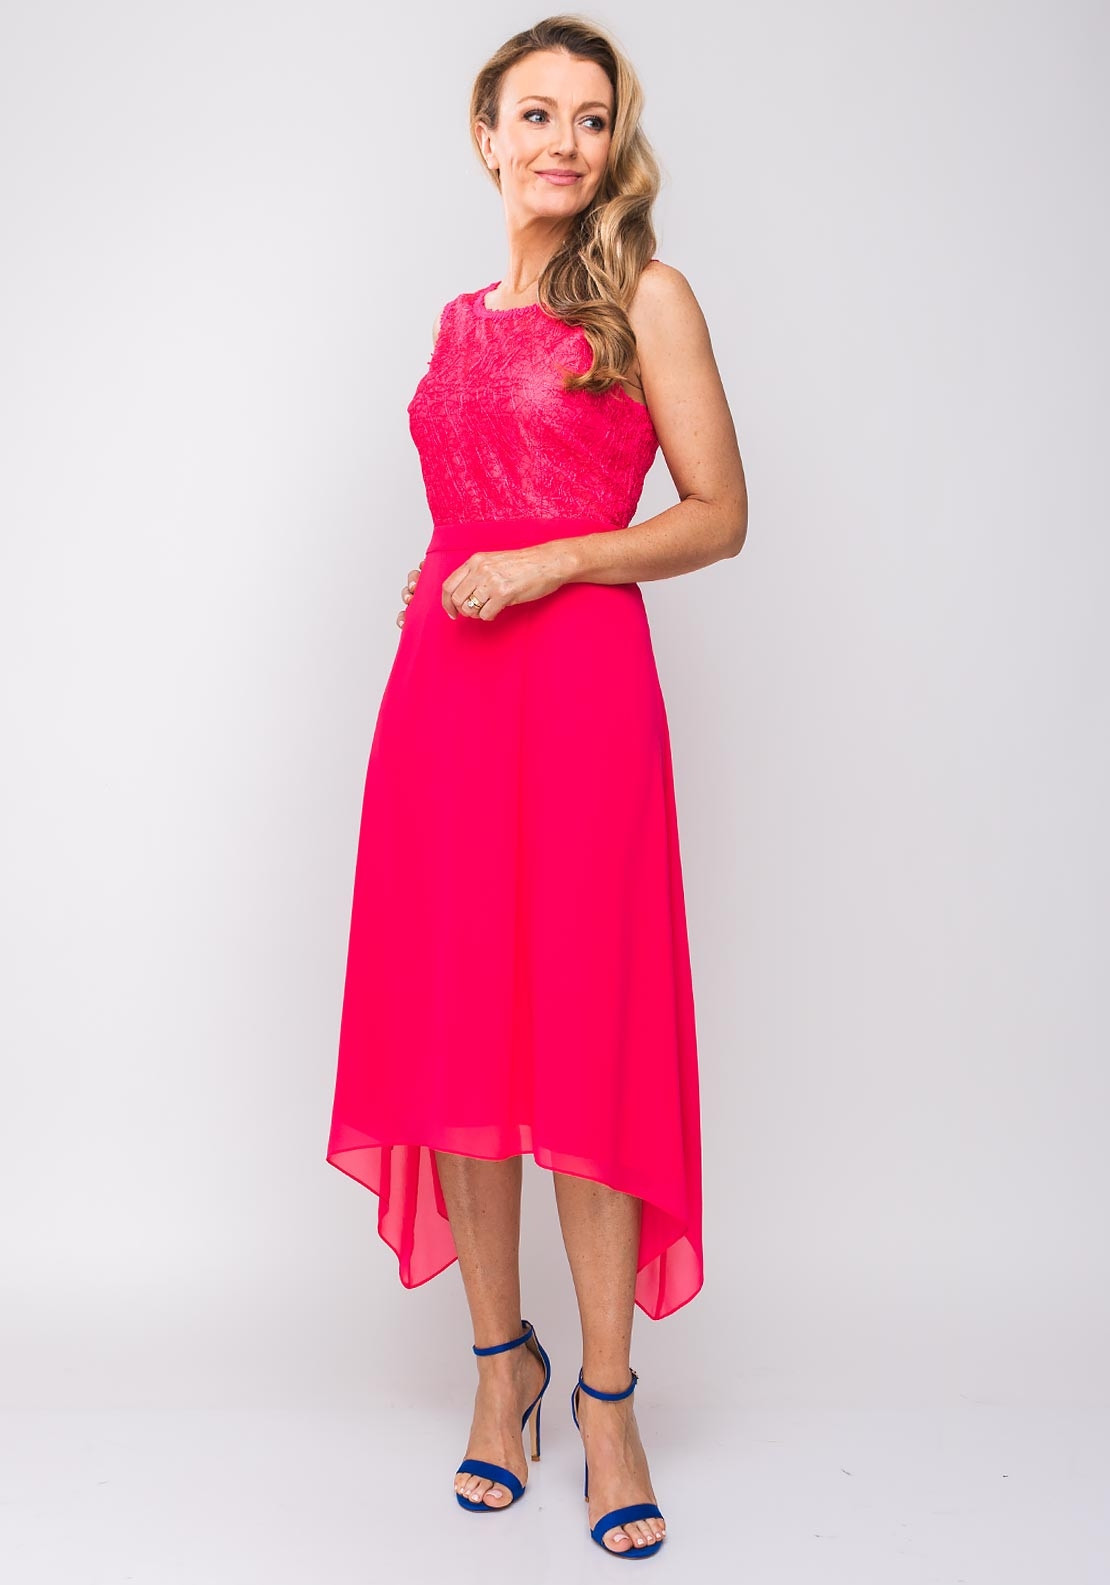 ebbbfd55ddeae Ella Boo Embroidered Bodice Flared Dress, Hot Pink. Be the first to review  this product